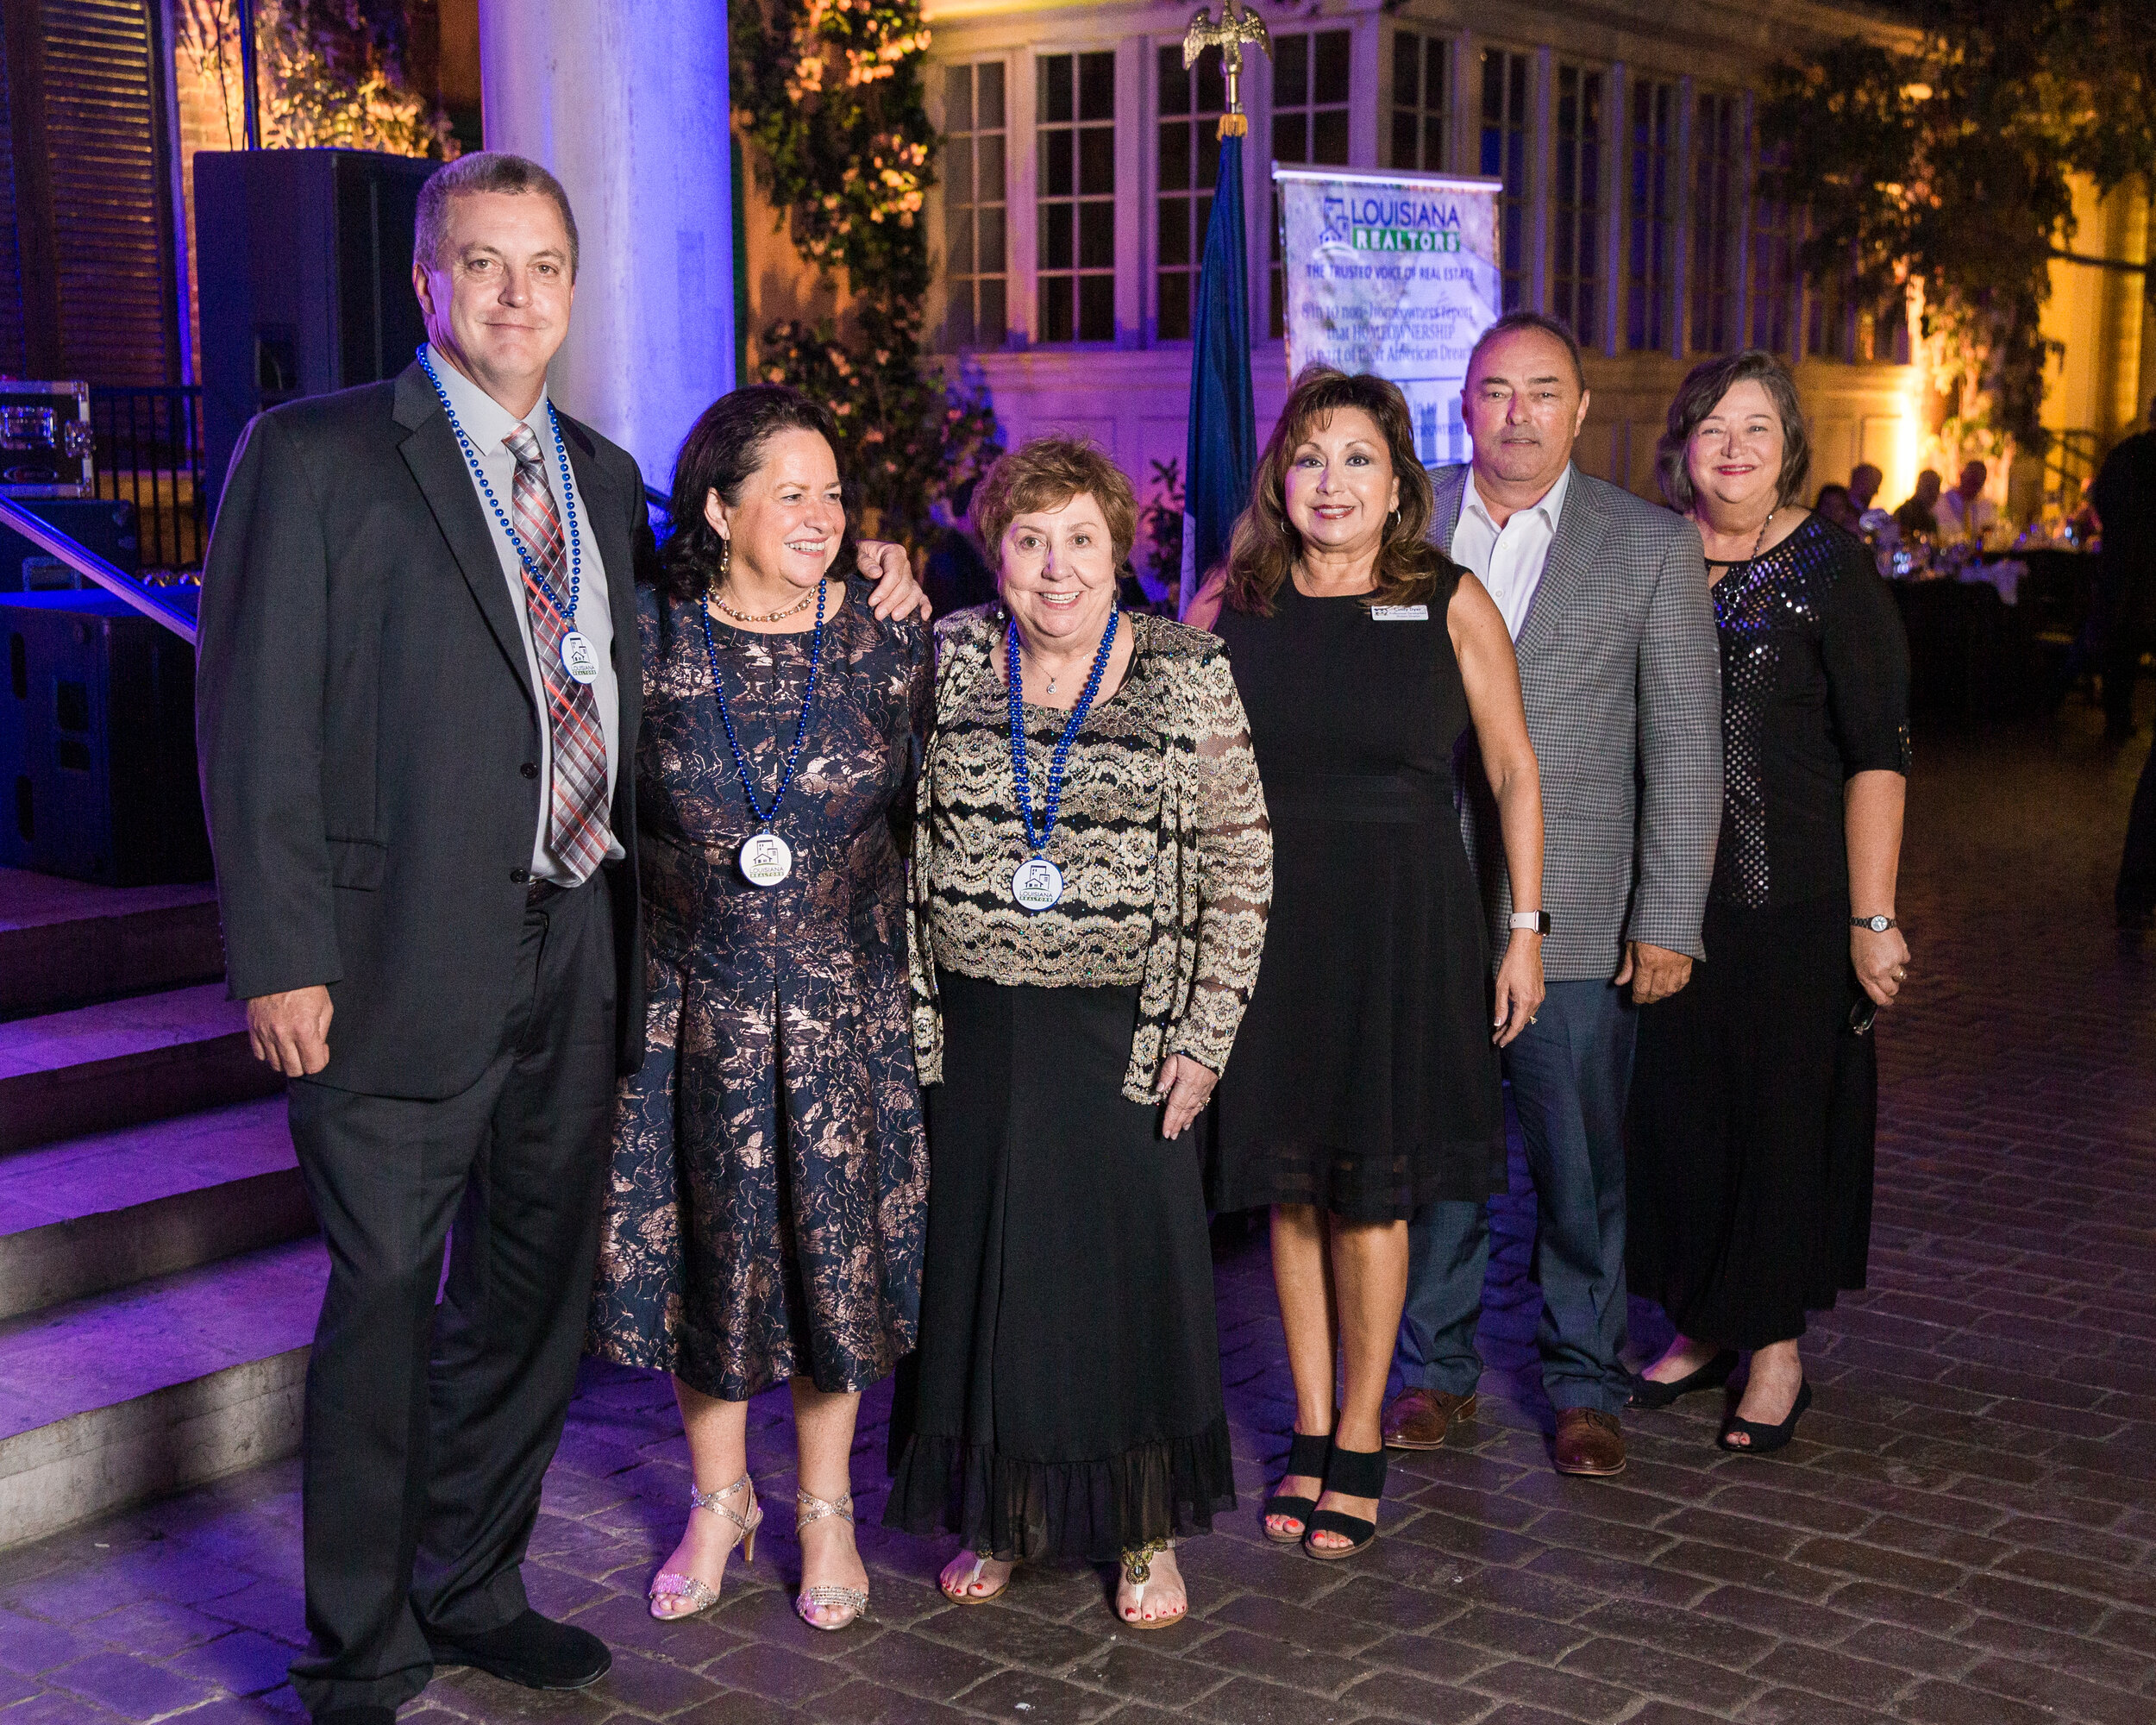 (L to R) Mark Ouchley, Evelyn Wolford, Eloise Gauthier, Cindy Dyer, Tony Corner, Karen Guerra